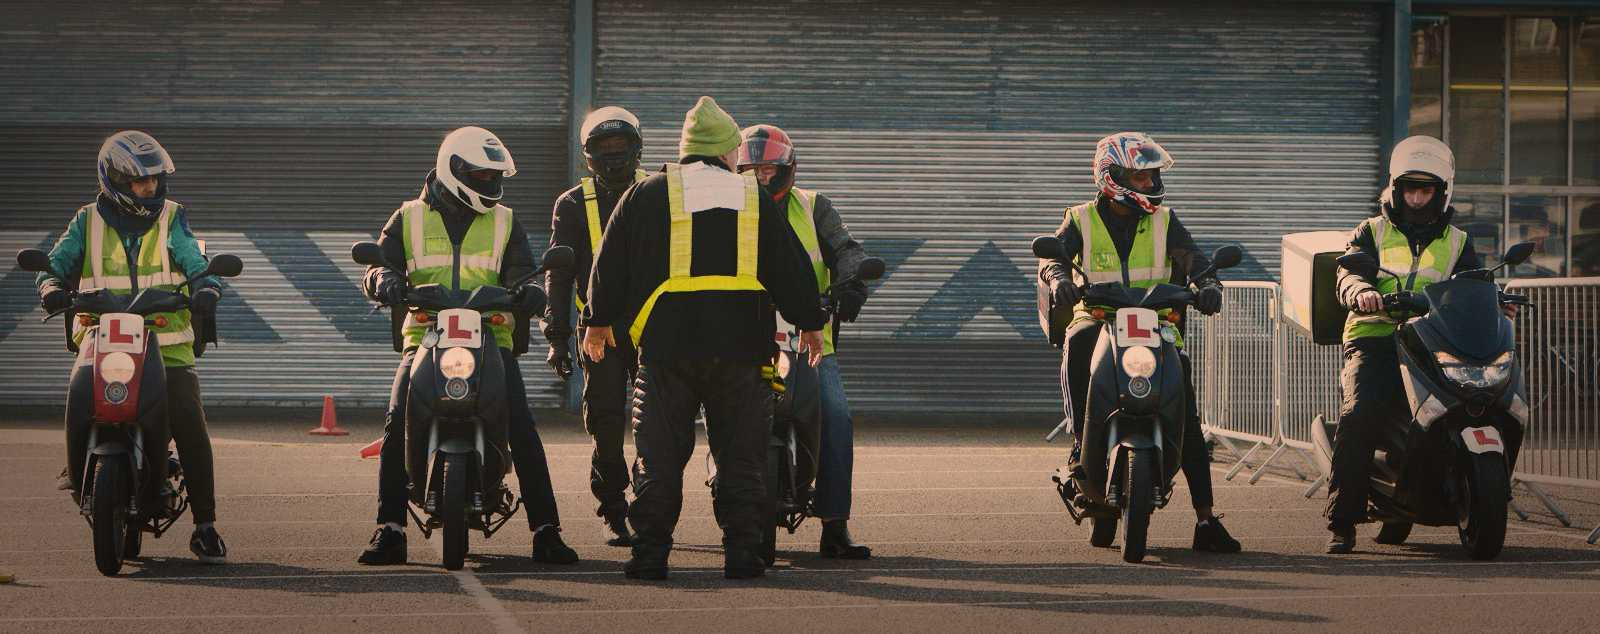 London Motorcycle Training CBT